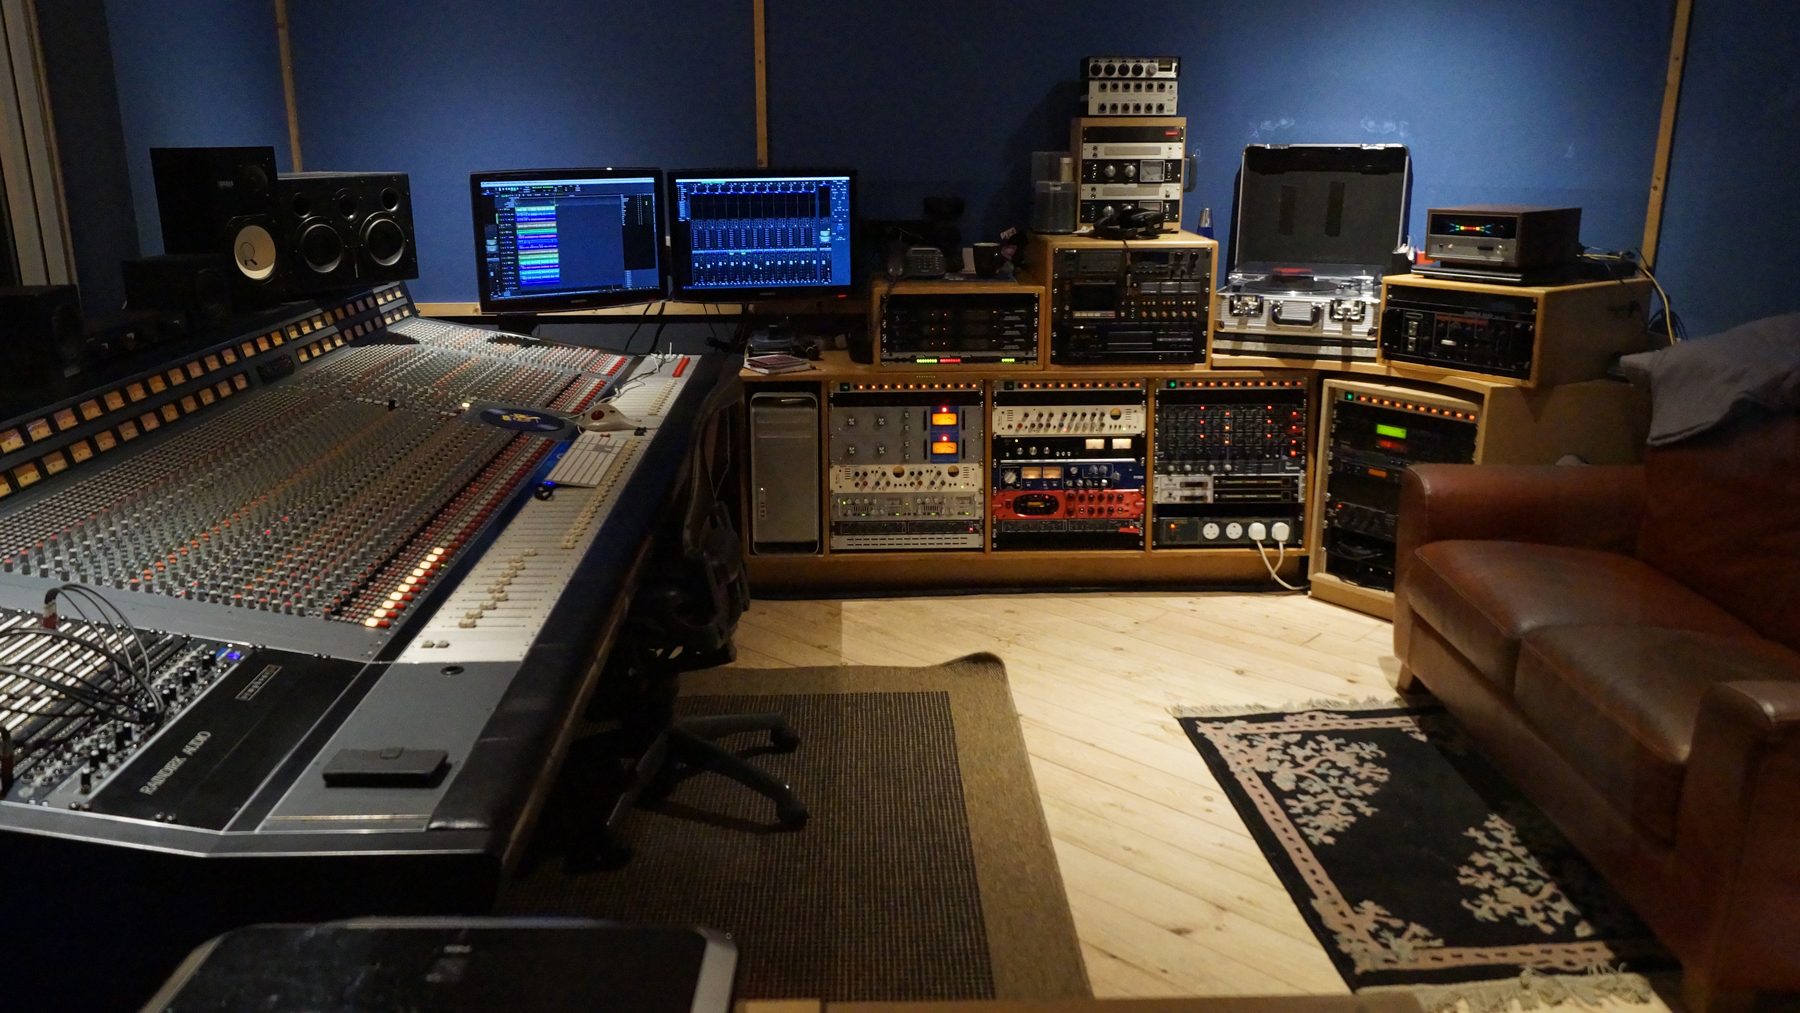 Big Noise Control Room